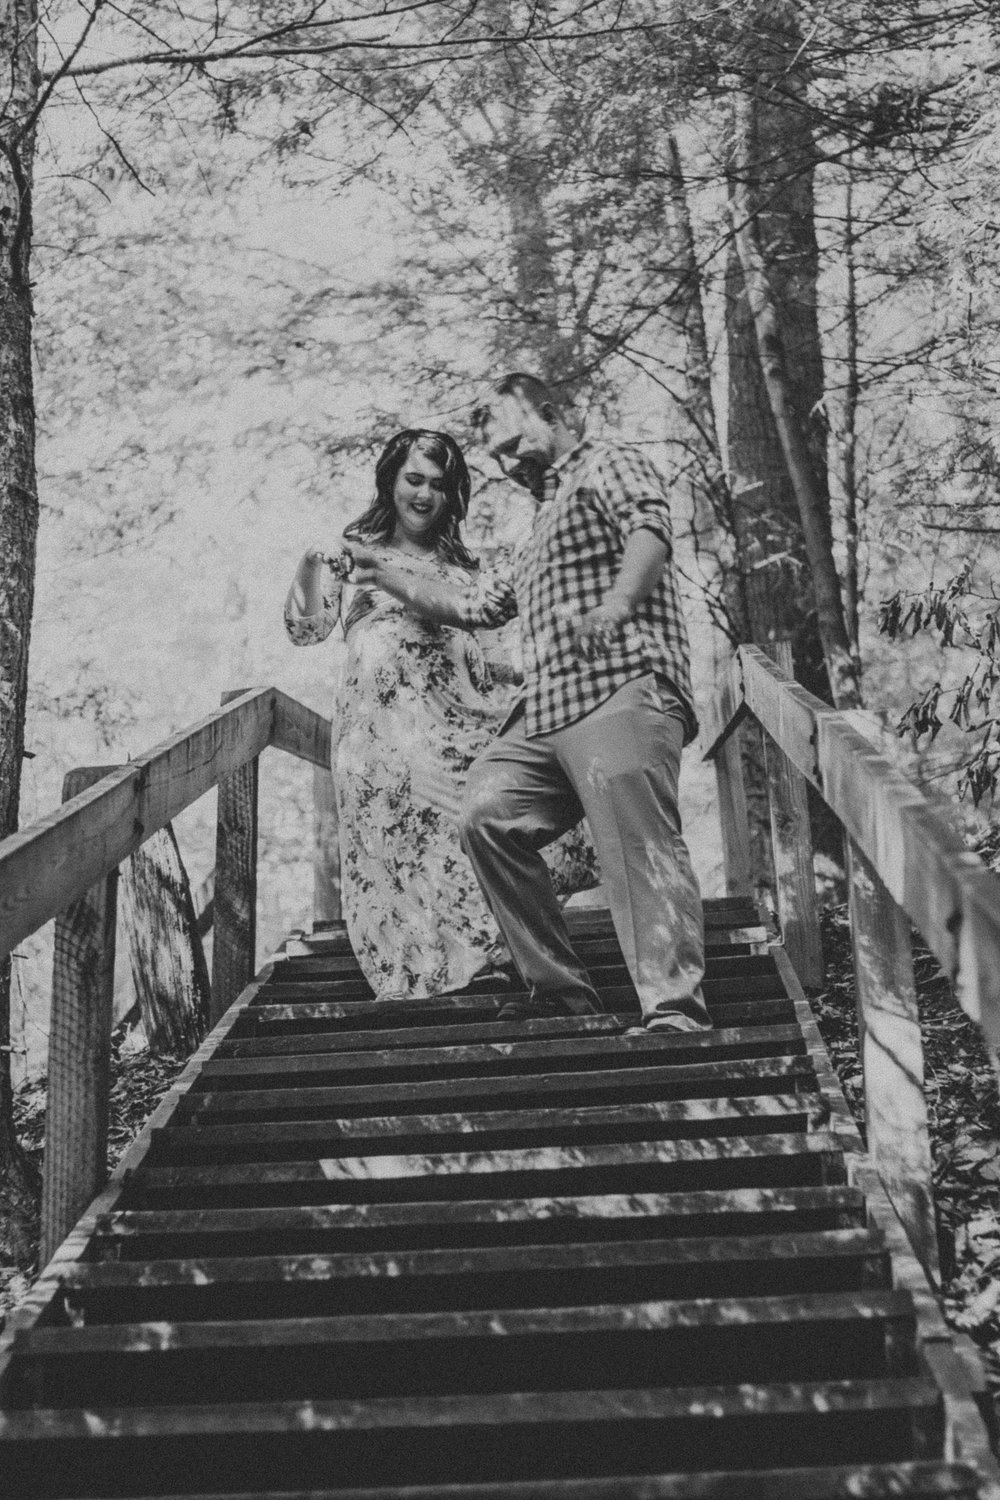 Black and white photo of couple walking down stairs, Artistic + Woodsy Maternity Session | Sarah P Thomas Photography